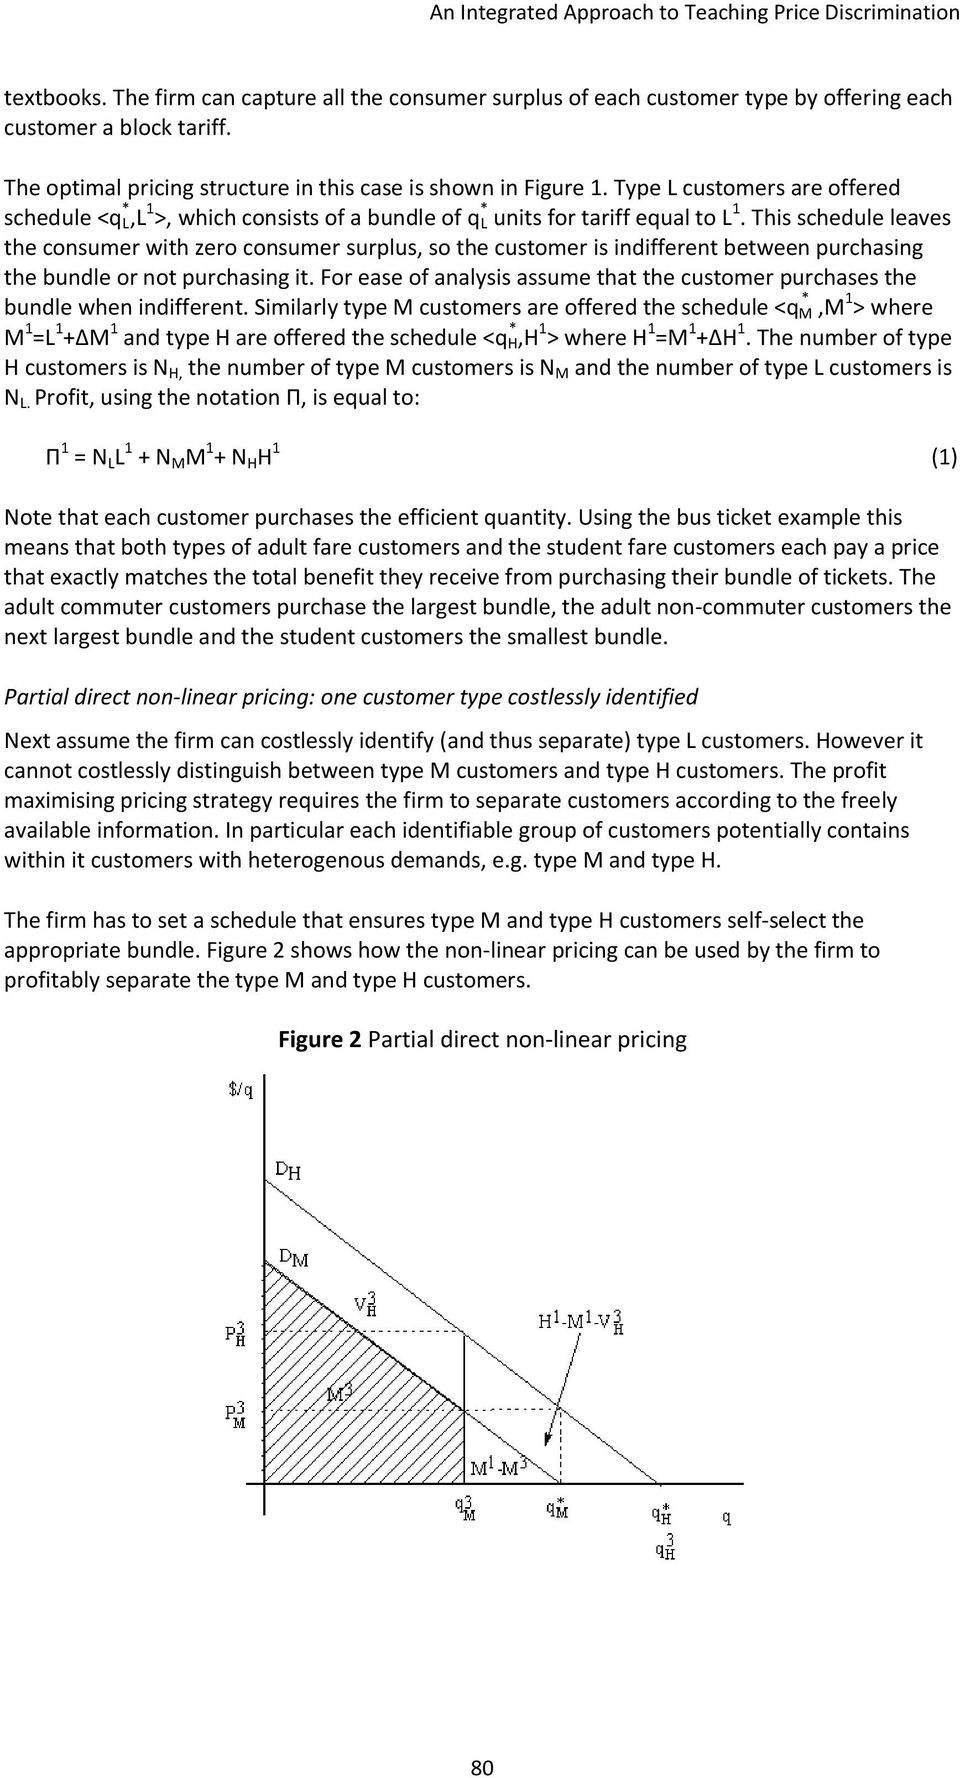 An Integrated Approach to Teaching Price Discrimination - PDF